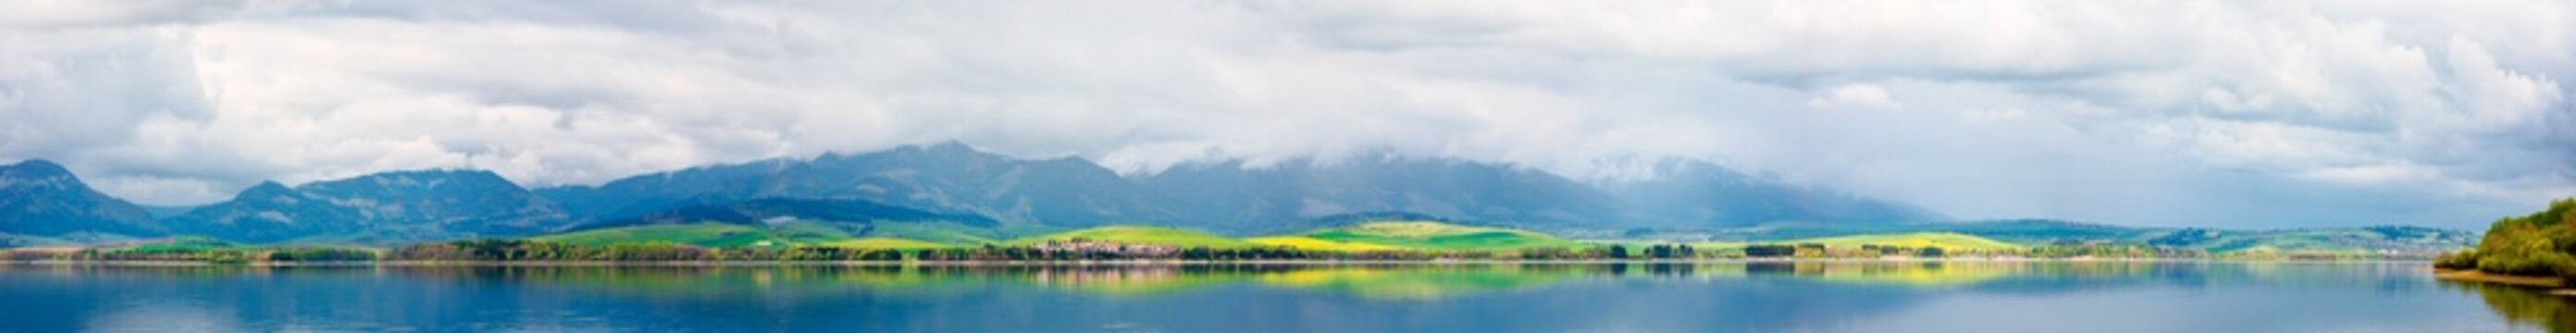 panorama of lake in mountains. cloudy day in springtime. beautiful scenery of high tatra mountains in dappled light. gorgeous landscape of liptovska mara, slovakia